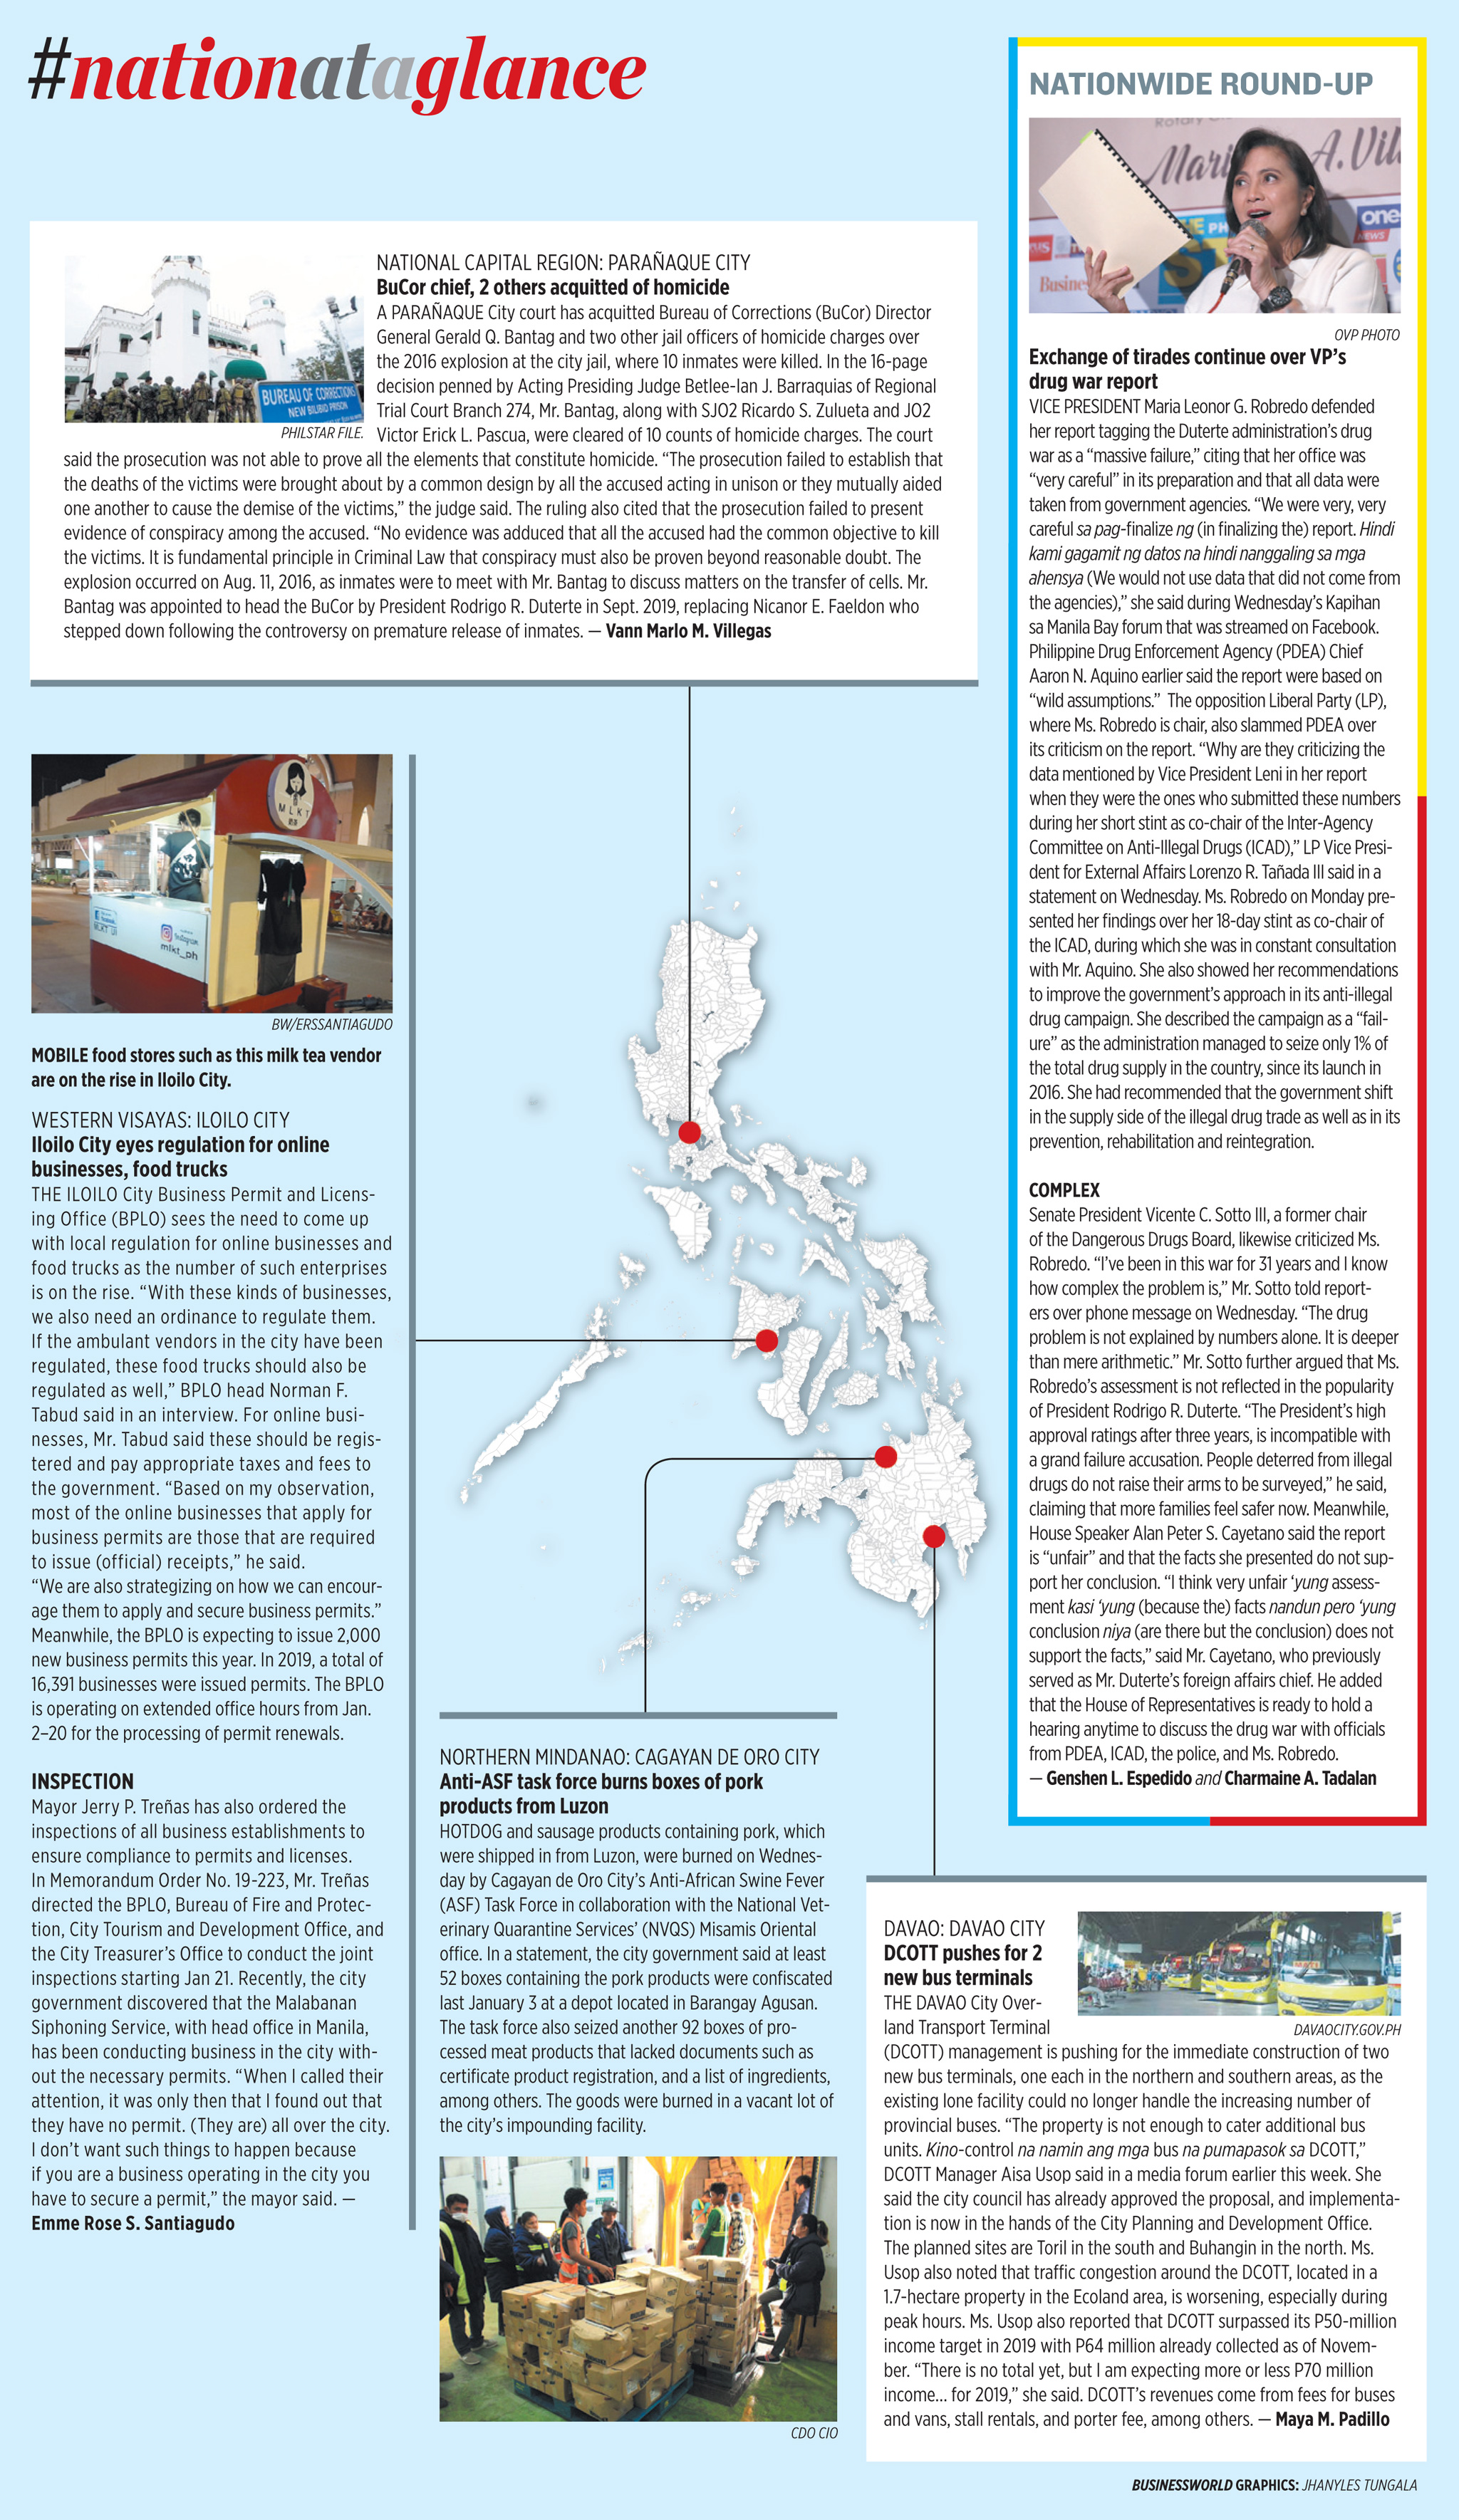 Nation at a Glance — (01/09/20)